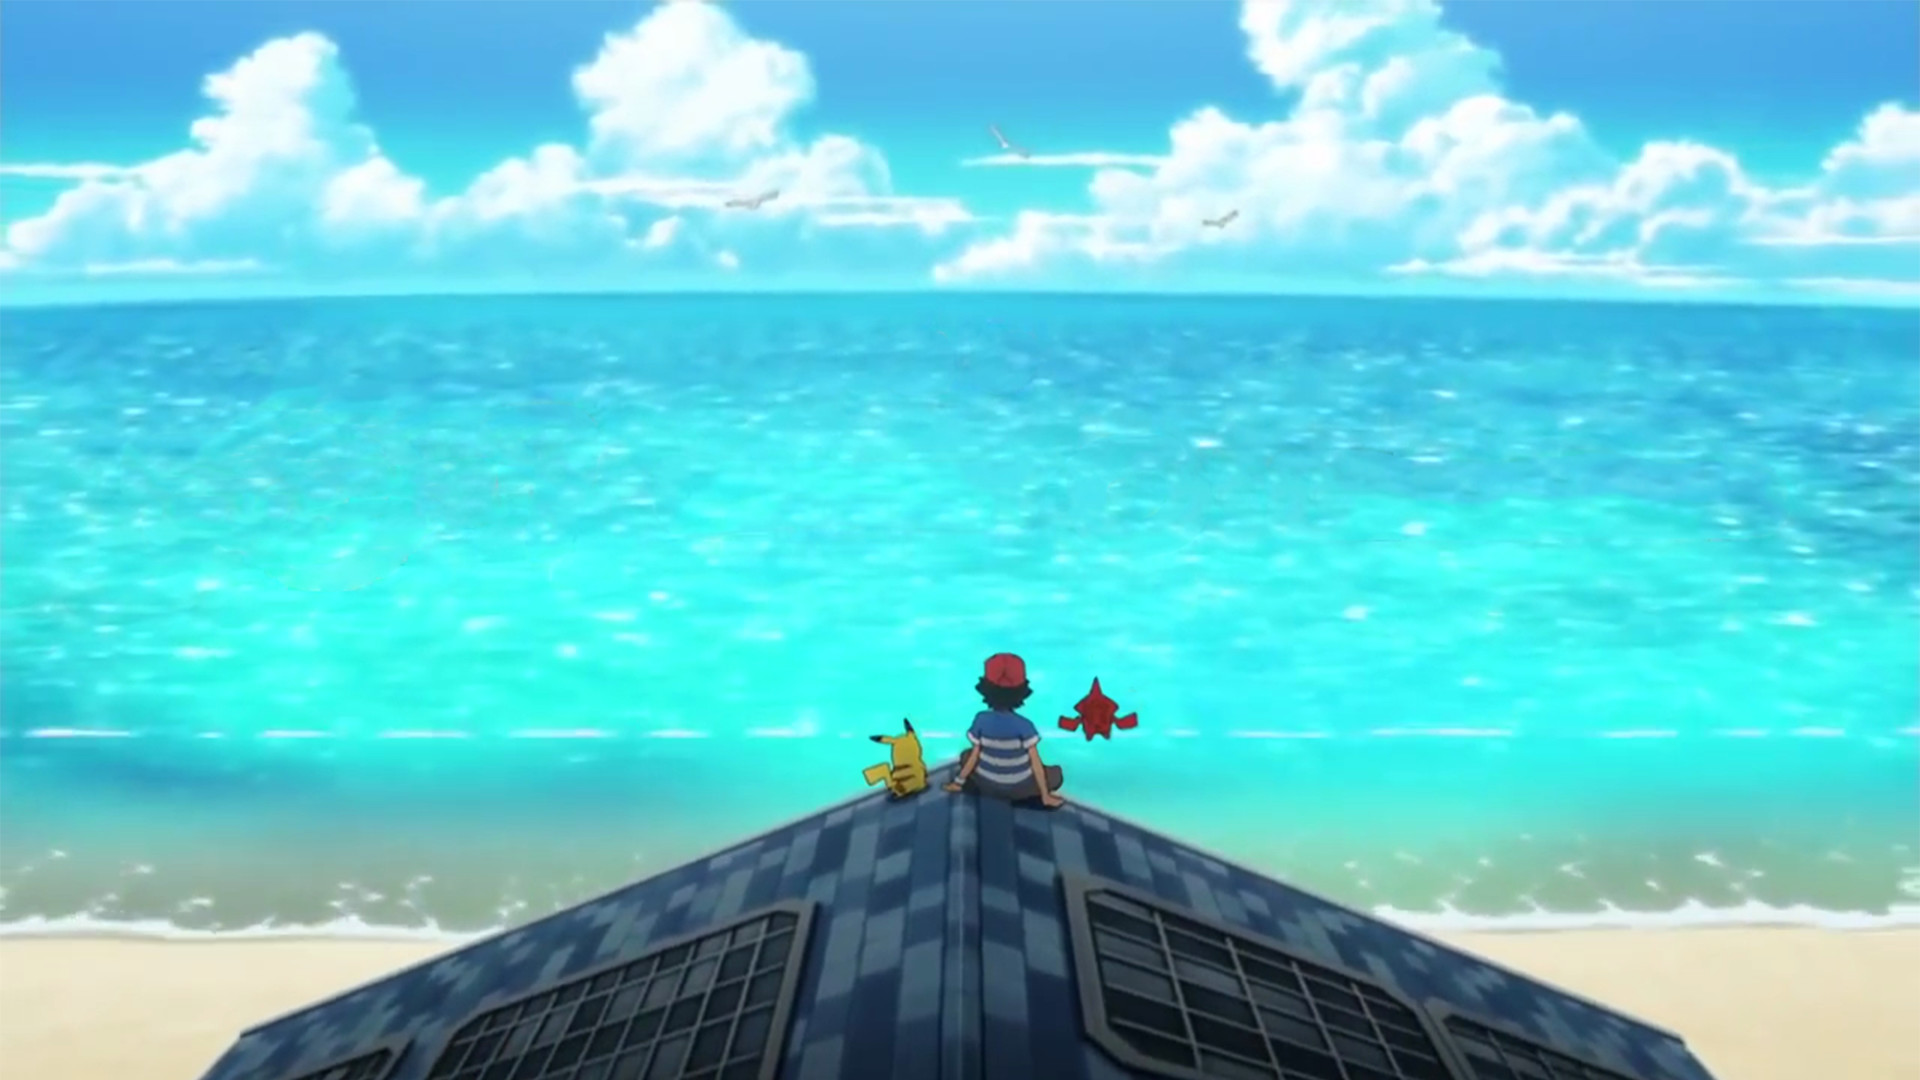 1920x1080 Pokémon: Sun & Moon - Anime Intro Wallpaper (1080p) (Scaled)